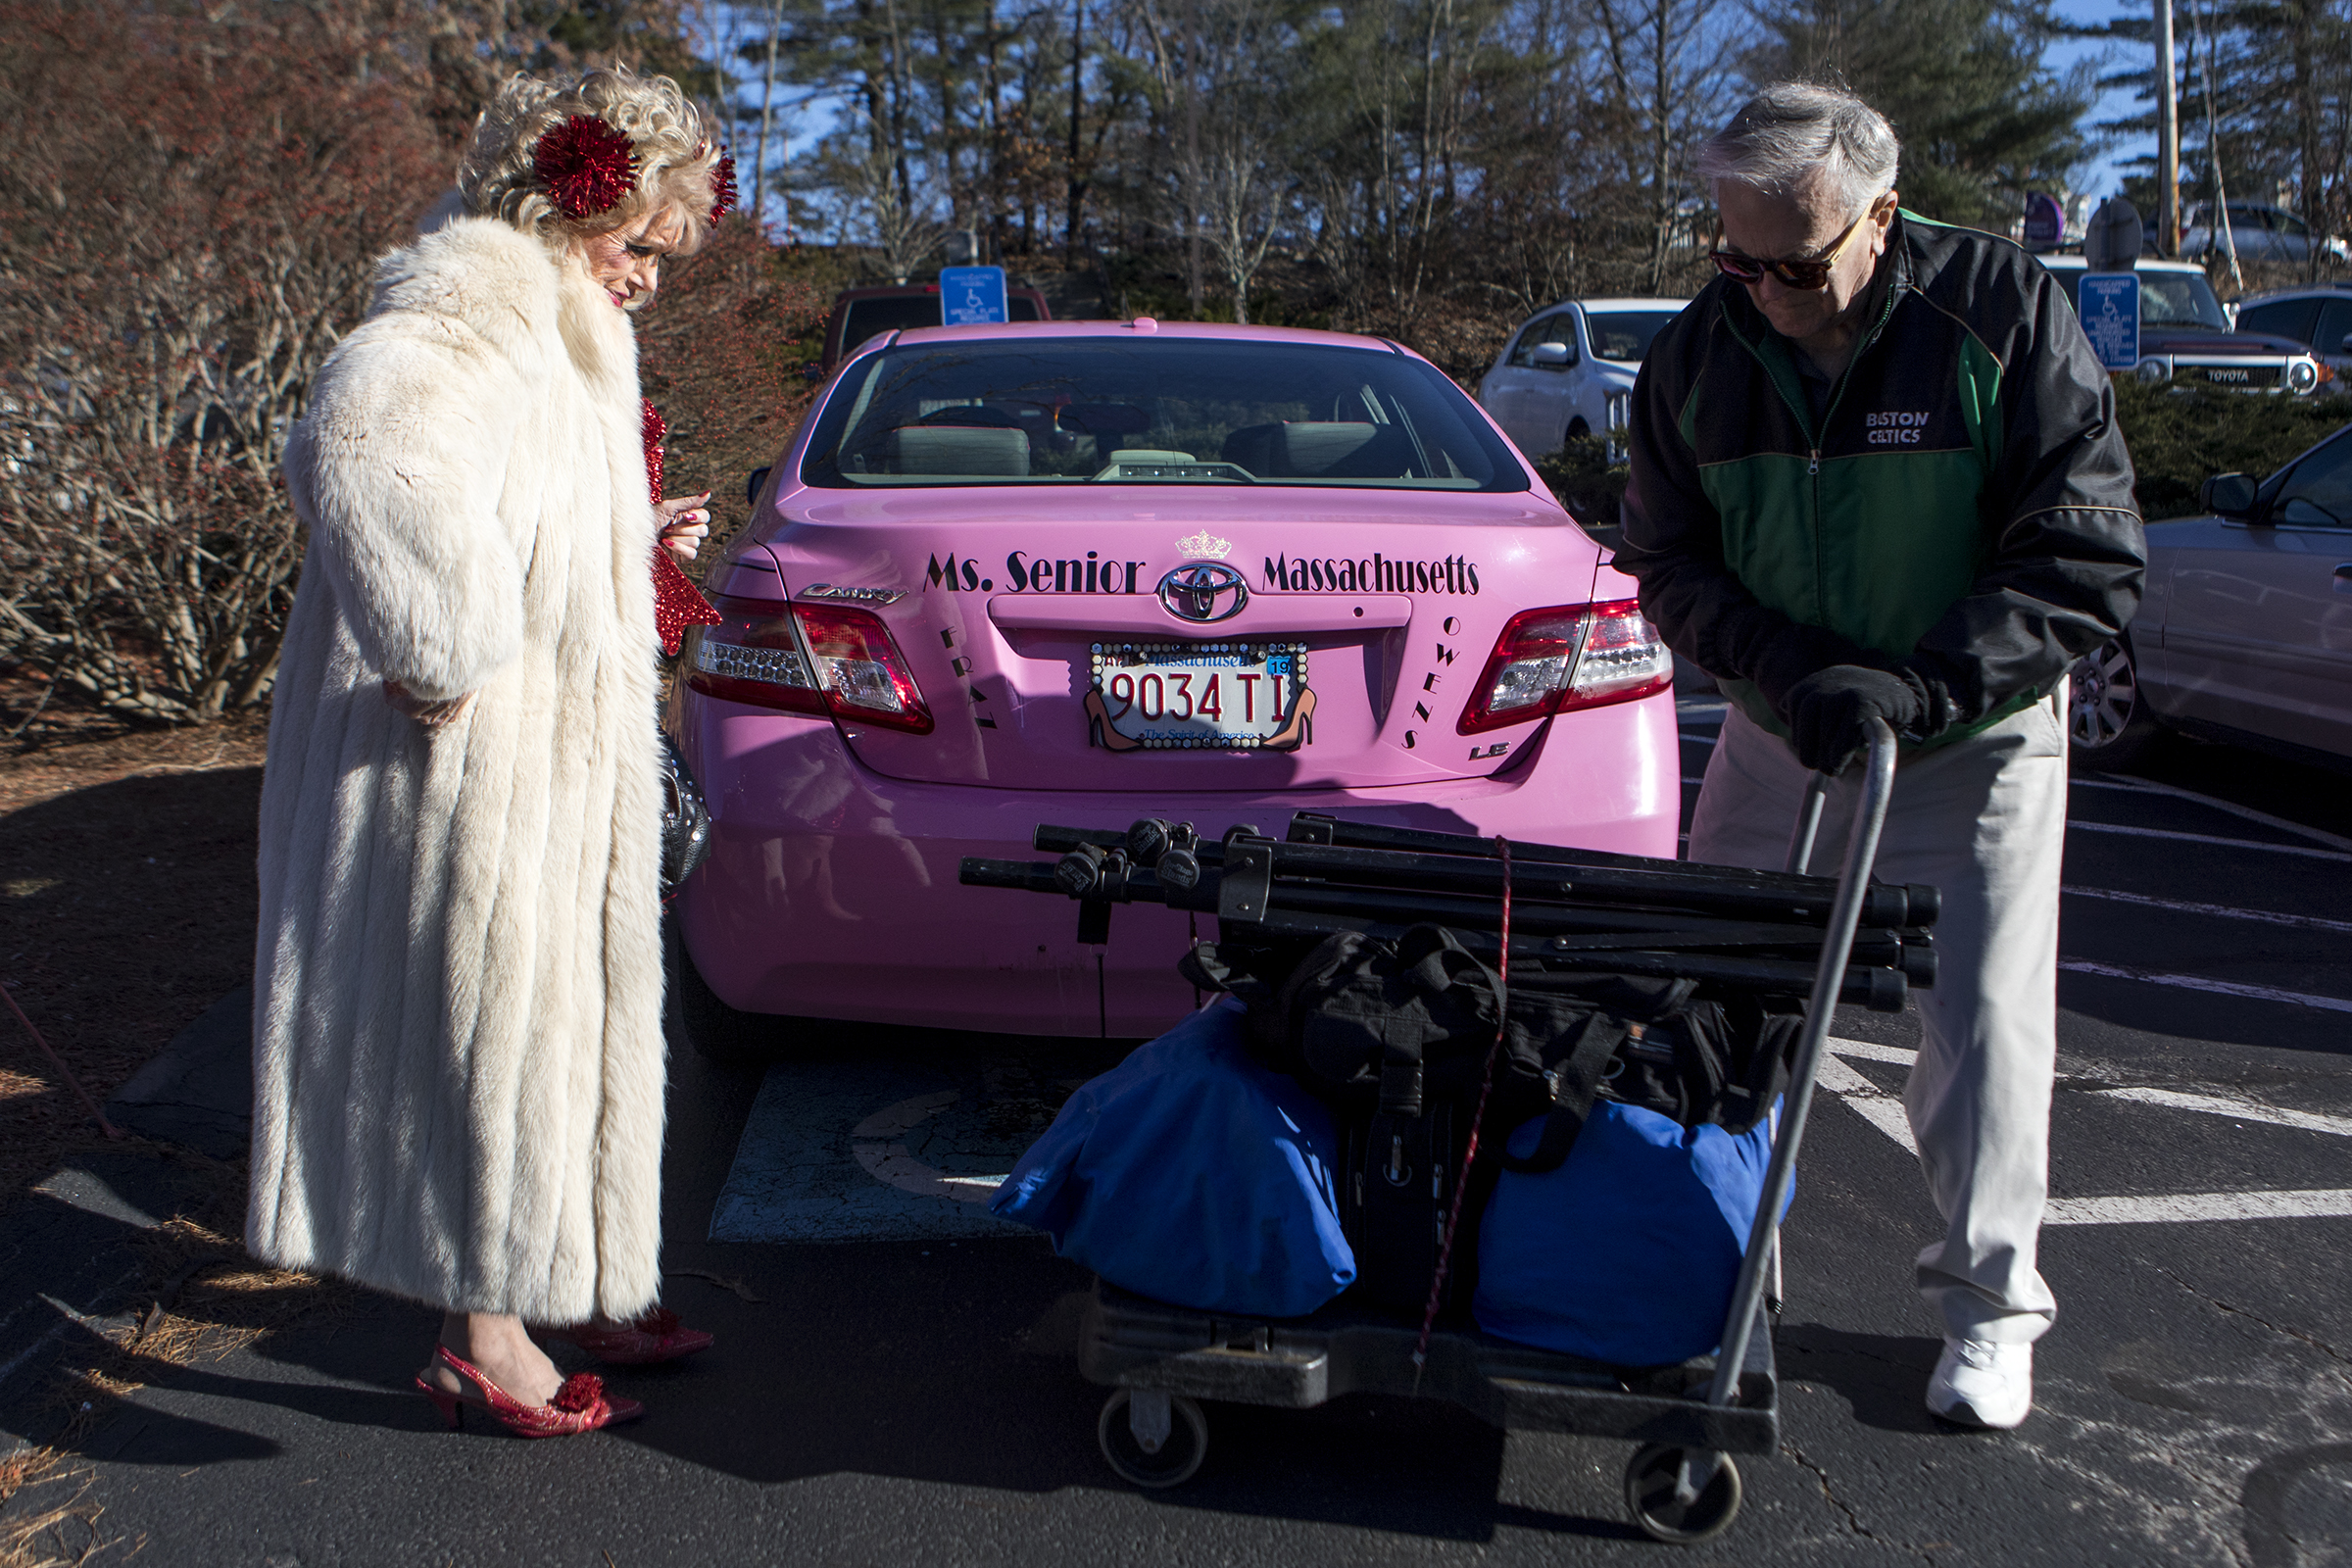 Fran Owens watches as her husband Jim Haupt loads her equipment into her car after performing at Mary Ann Morse Healthcare Center in Natick on Dec. 7, 2018. Although Owens has been married 12 times, she refers to Haupt as her first real marriage after she became mentally well.